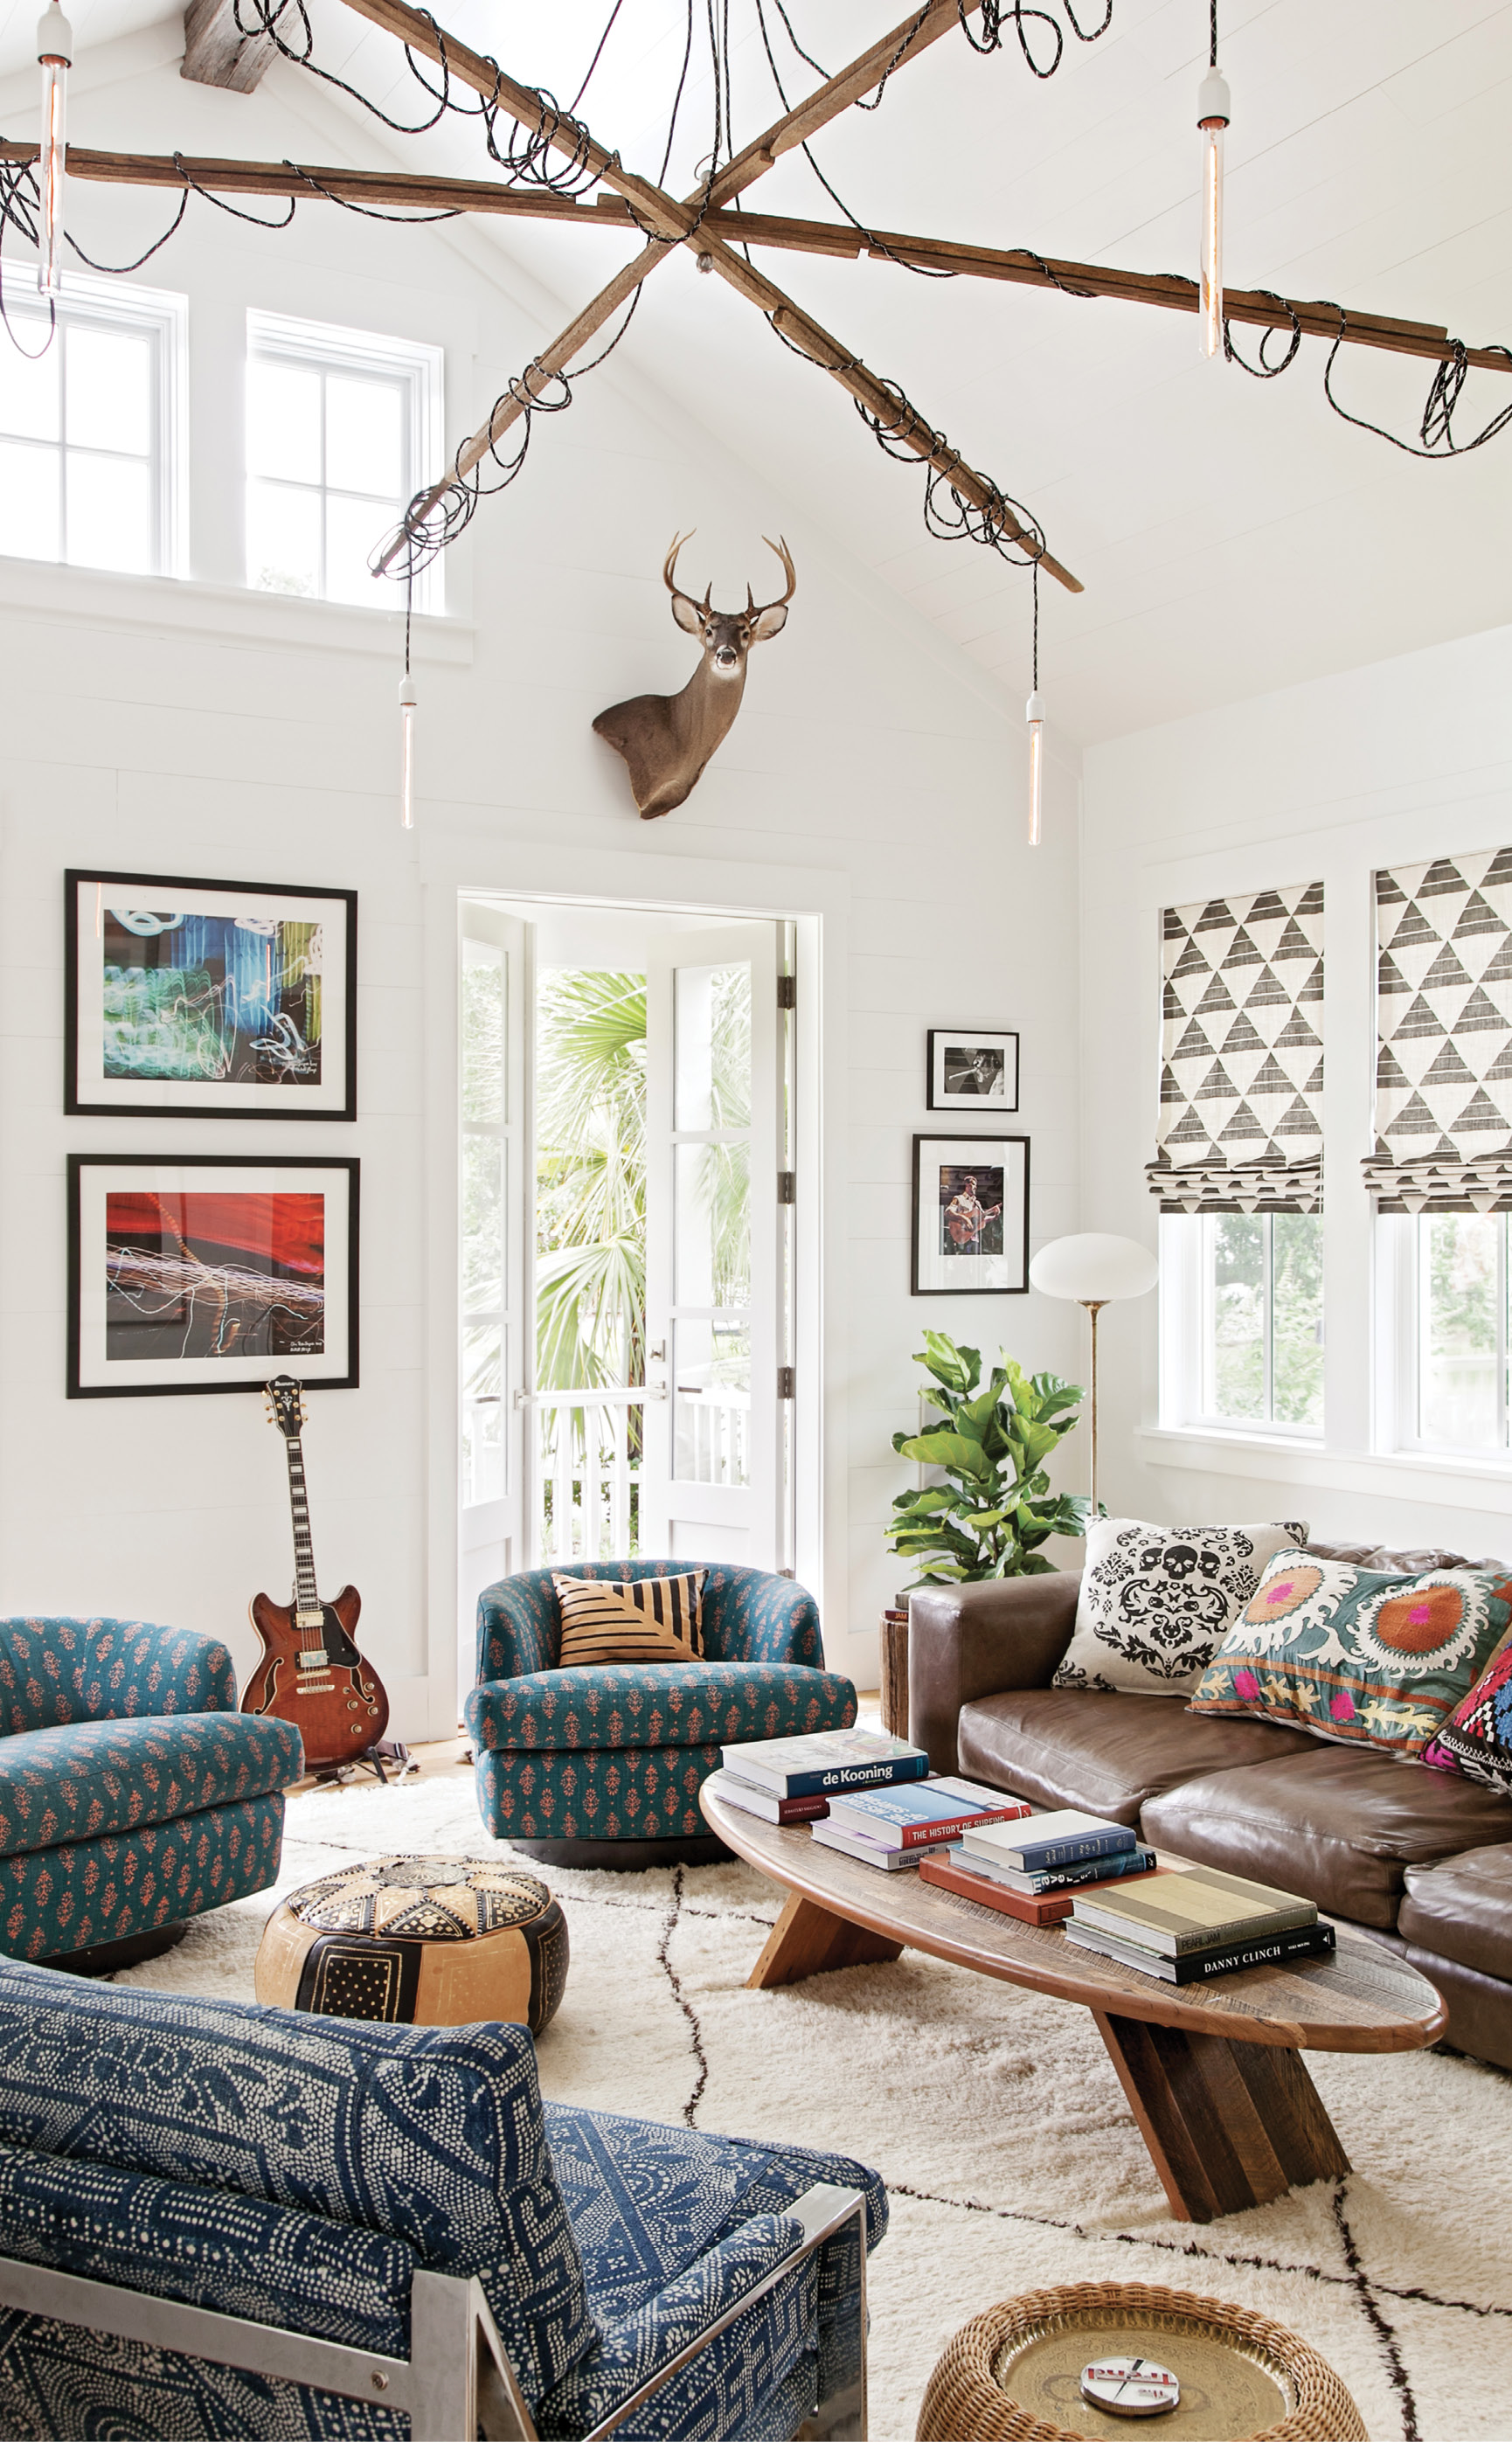 """HOME, SWEET HOME: The family room is the Keenans' haven. Modeled on the former sweet shop that occupied the lot, its tall walls and vaulted ceilings provide plenty of space to showcase the couple's photography collection and custom Jeff Jones tobacco stick chandelier (""""We literally built this room around that fixture,"""" says Keenan, only half-jokingly.)"""